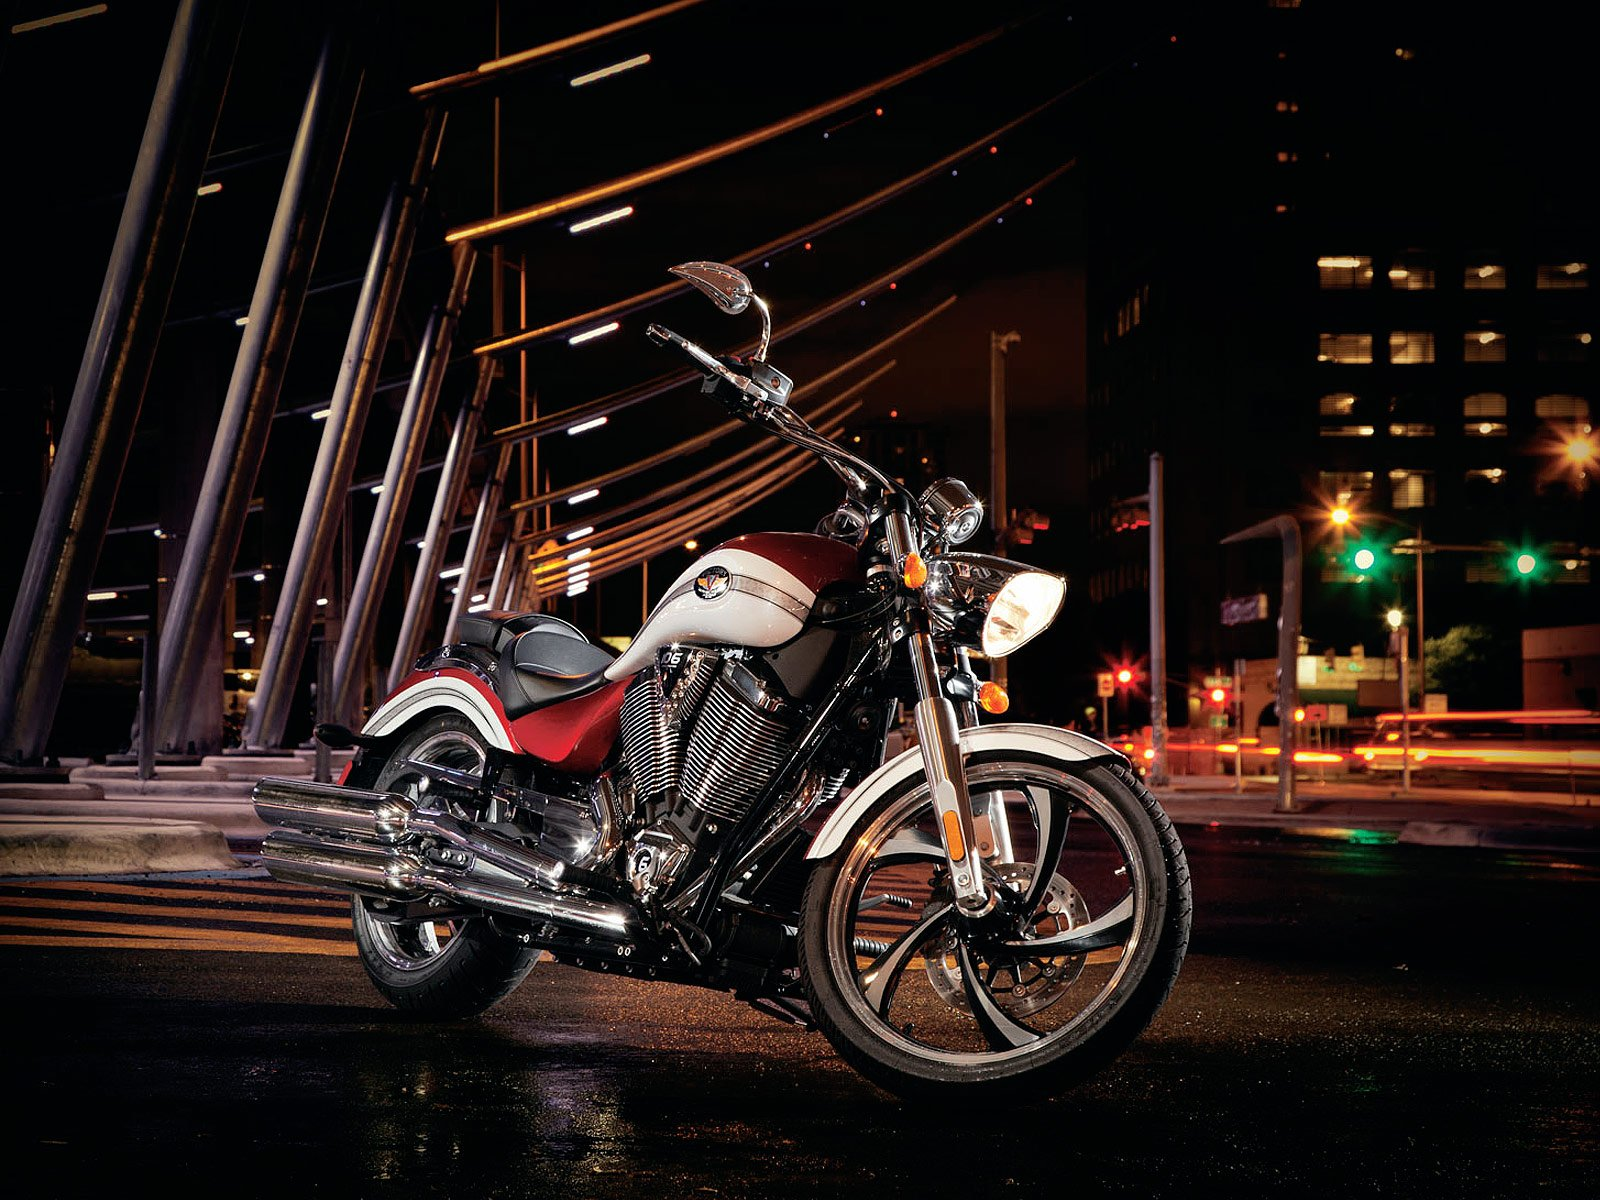 2012 VICTORY Vegas accident lawyers info Motorcycle wallpaper 1600x1200